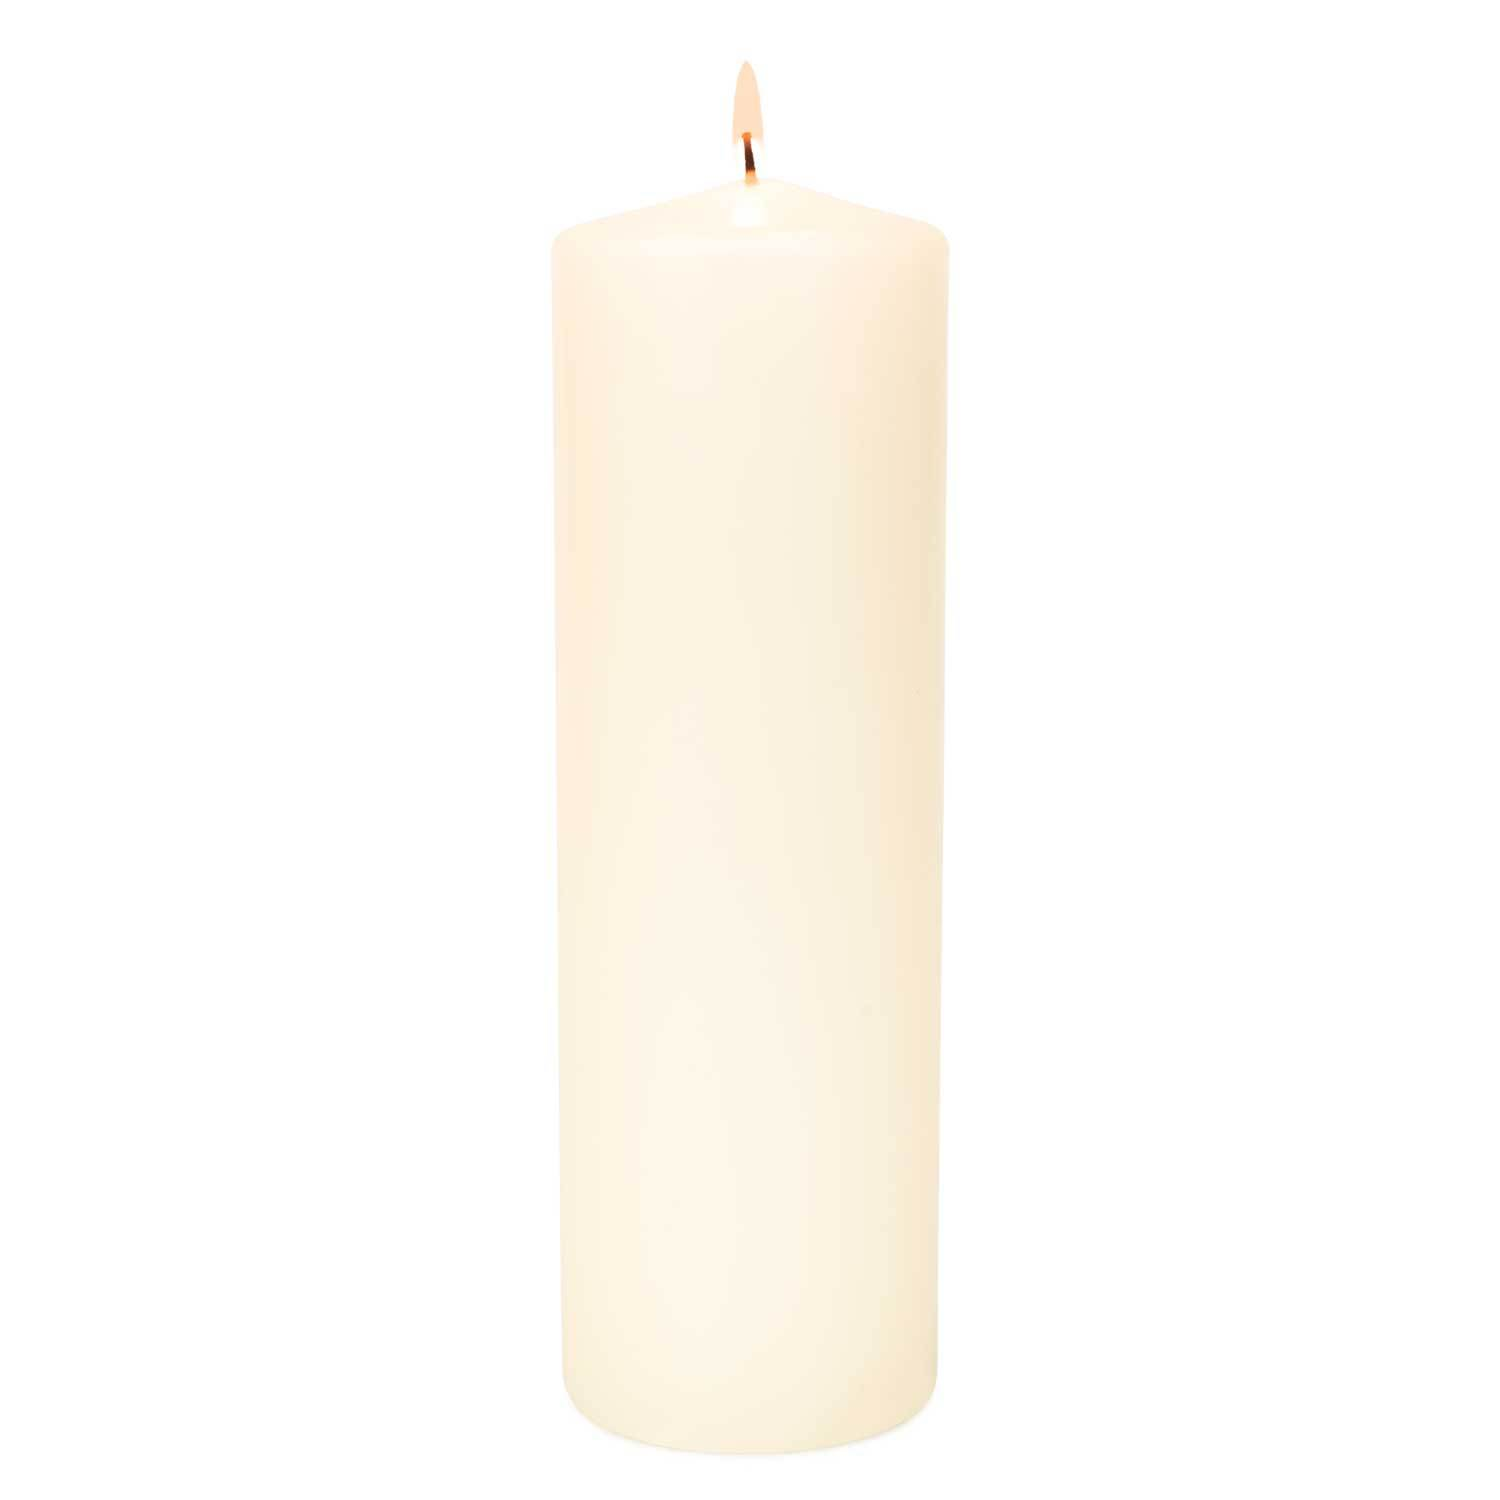 3x12 Unscented Ivory Pillar Candle Candles Candlemart.com $ 4.99